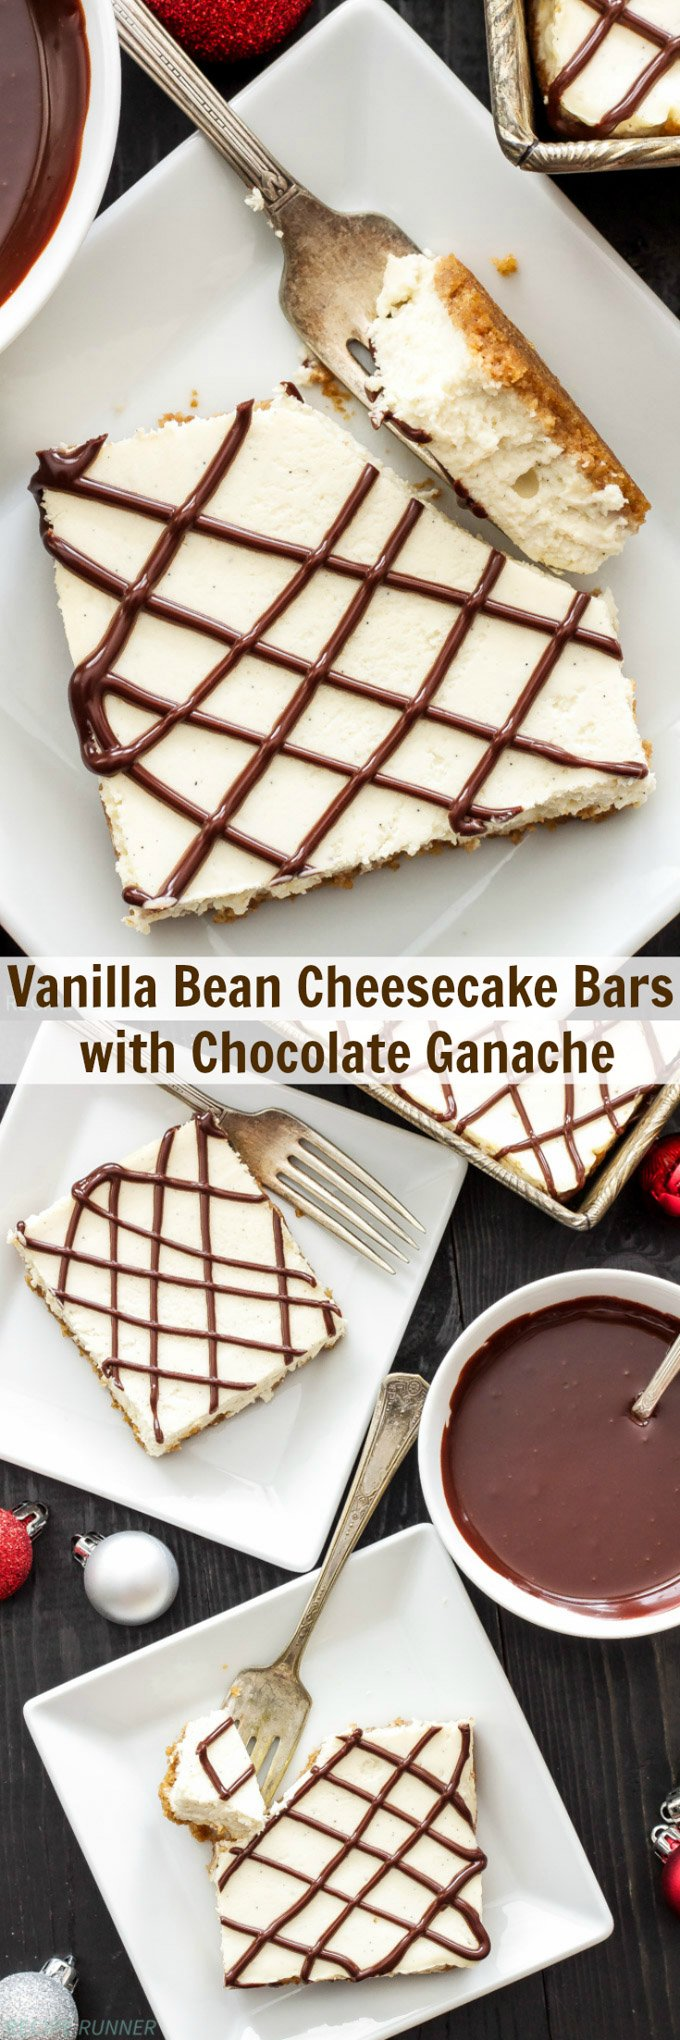 Vanilla Bean Cheesecake Bars with Chocolate Ganache | These lightened up vanilla cheesecake bars are the perfect holiday treat! #ZingBakingHoliday